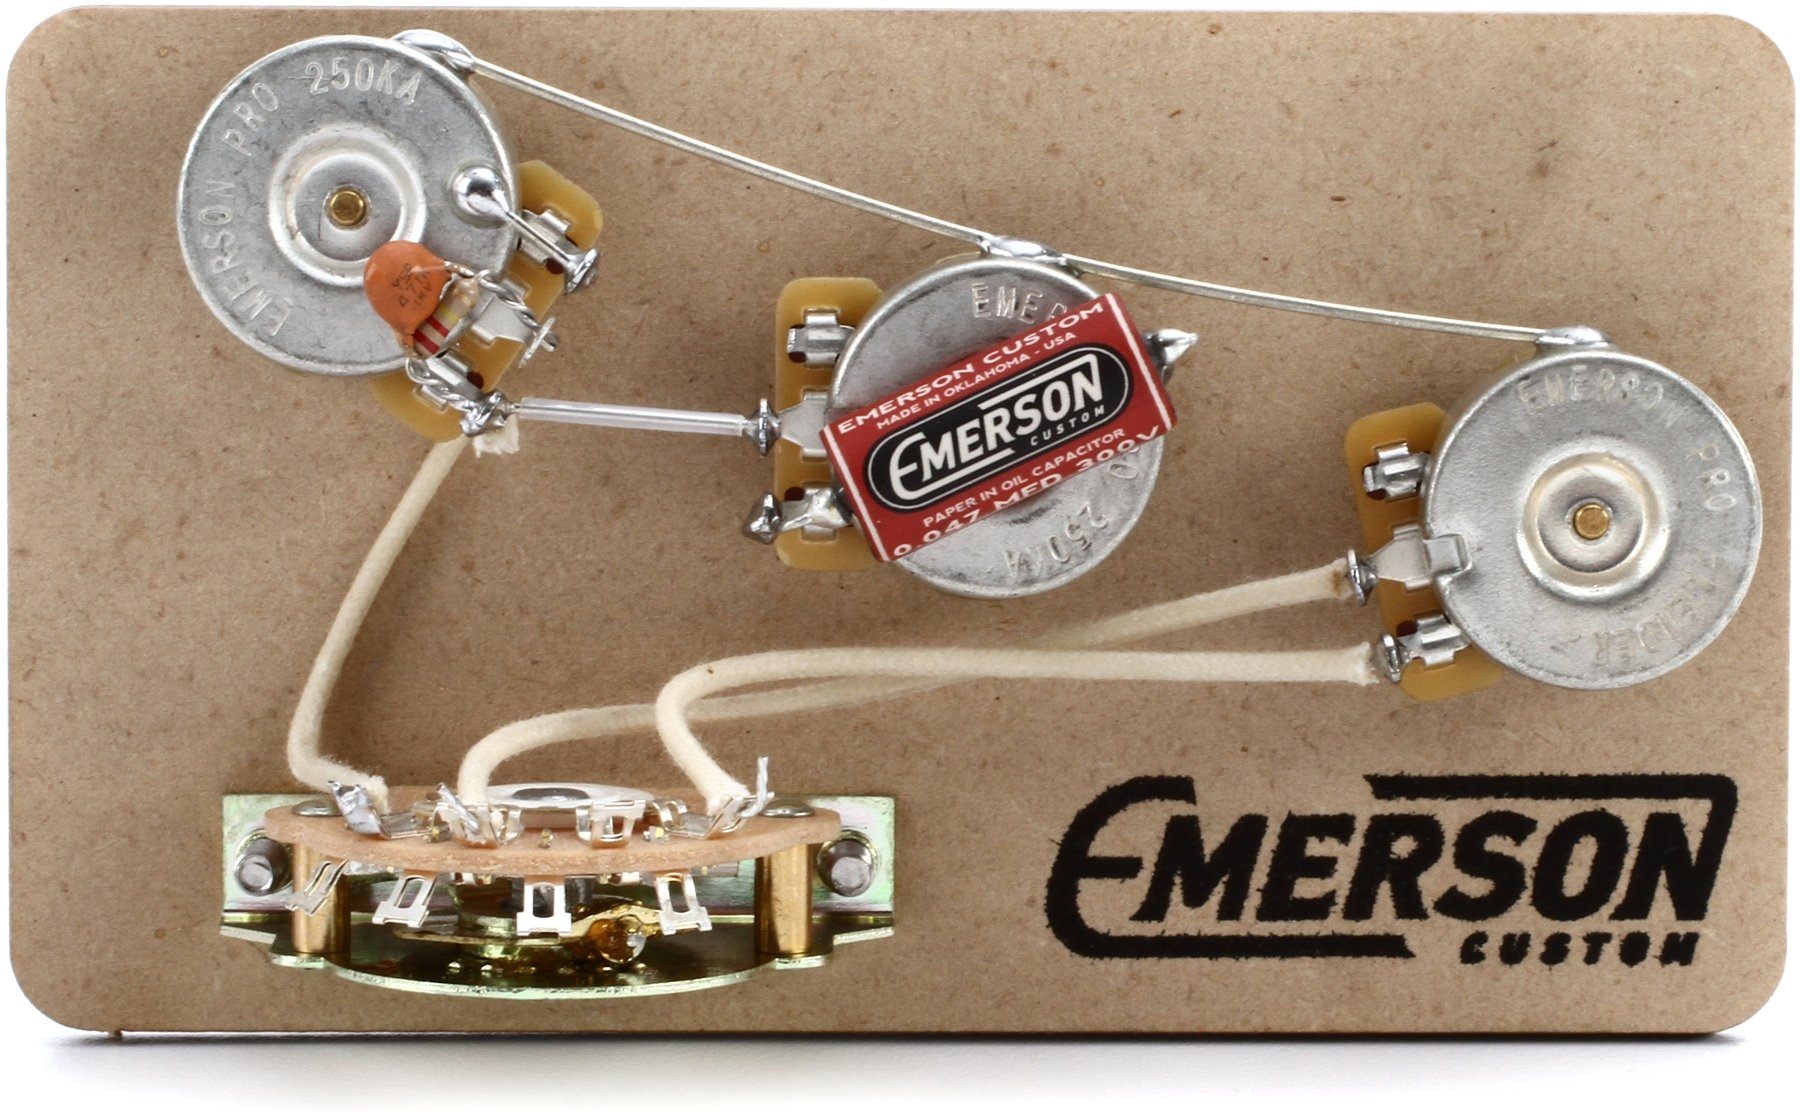 emerson custom 5 way blender prewired kit for fender stratocasters Emerson Pre Wired 5 Way Strat Switch Wiring Diagram emerson custom 5 way blender prewired kit for fender stratocasters 250kohm pots image 1